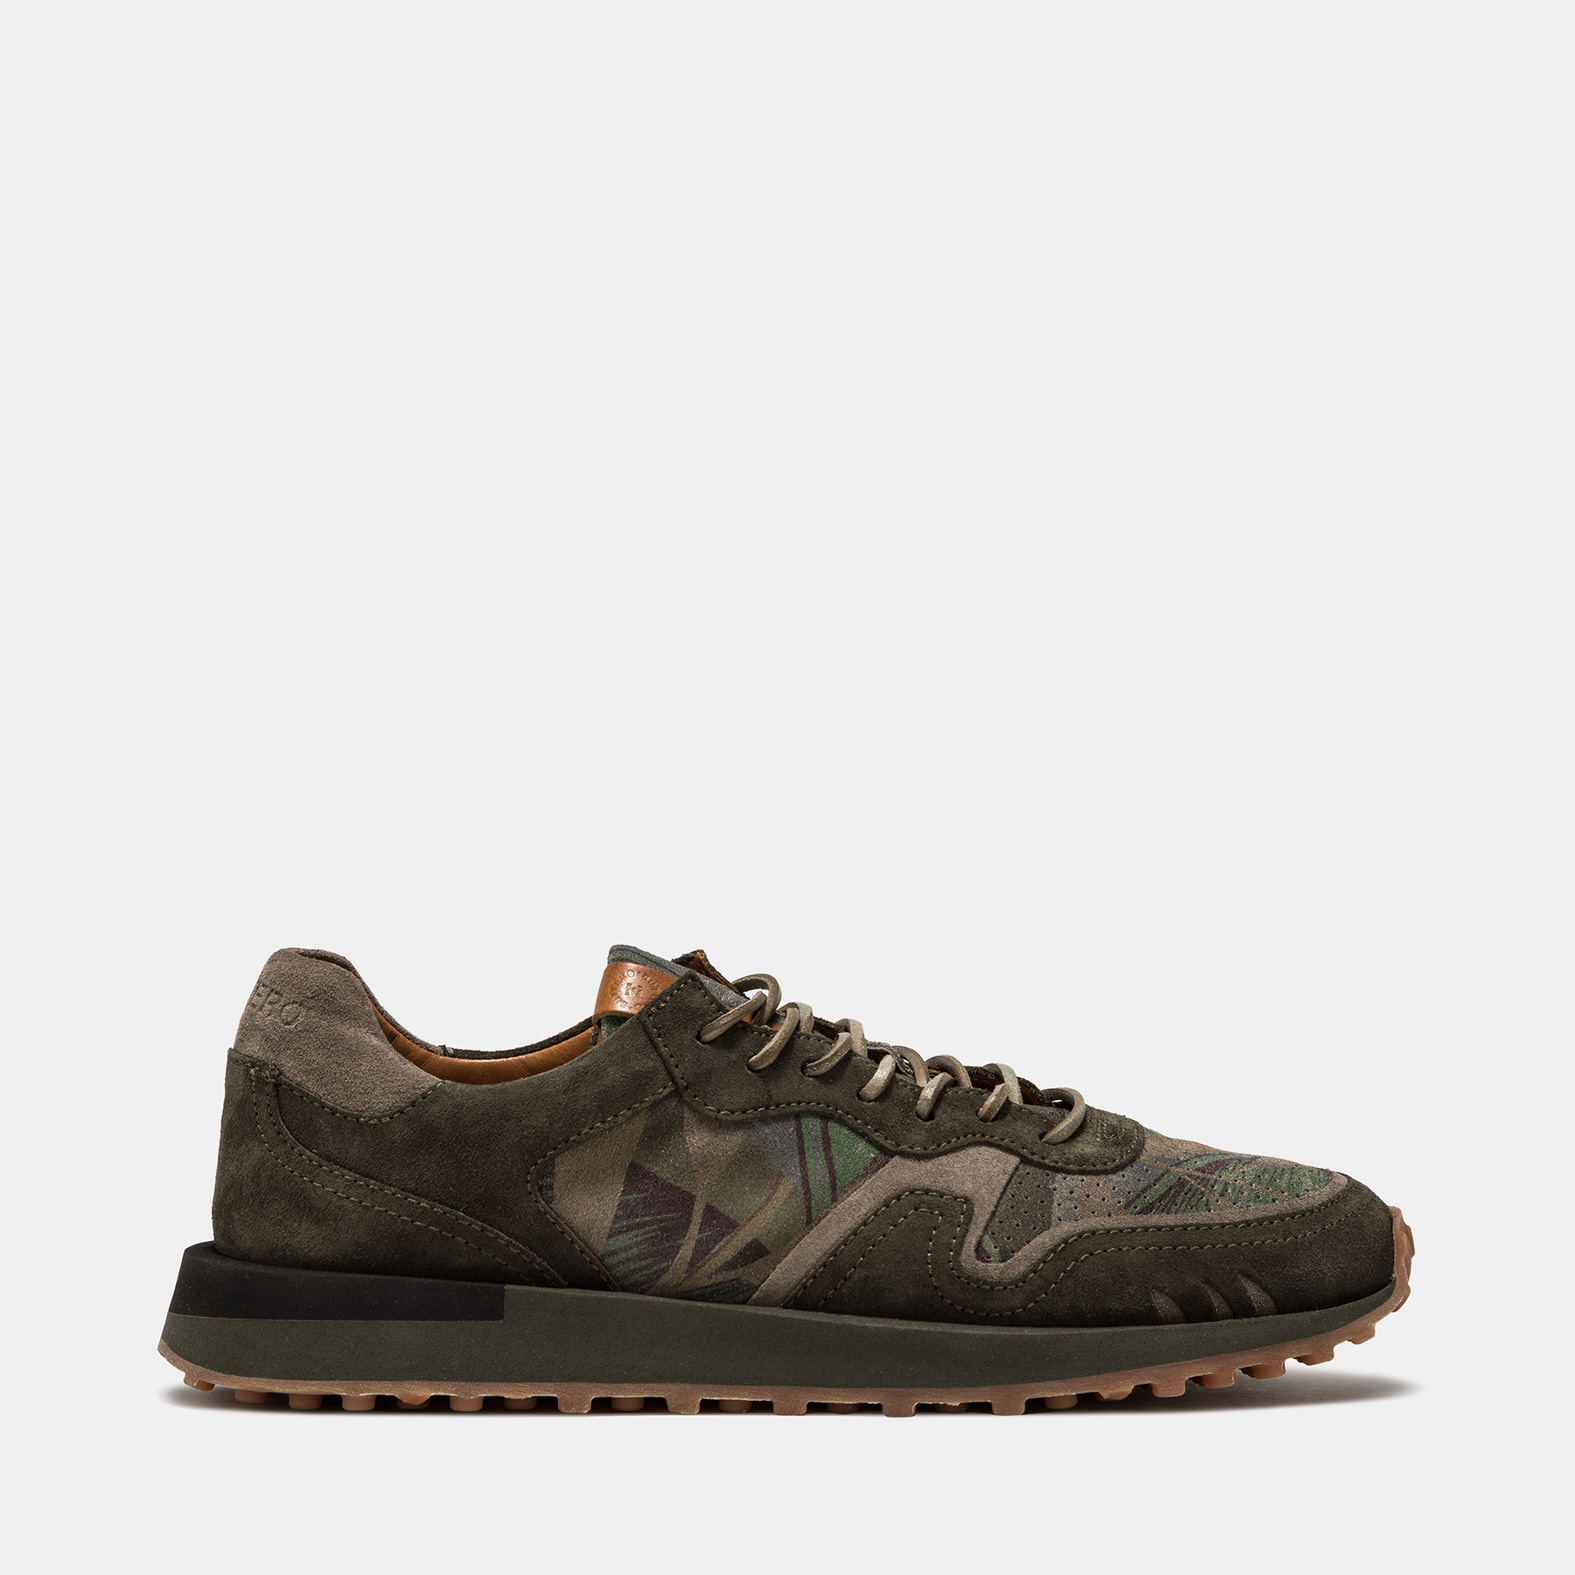 BUTTERO: FUTURA SNEAKERS IN HUNTER GREEN SUEDE WITH FLORAL PATTERN